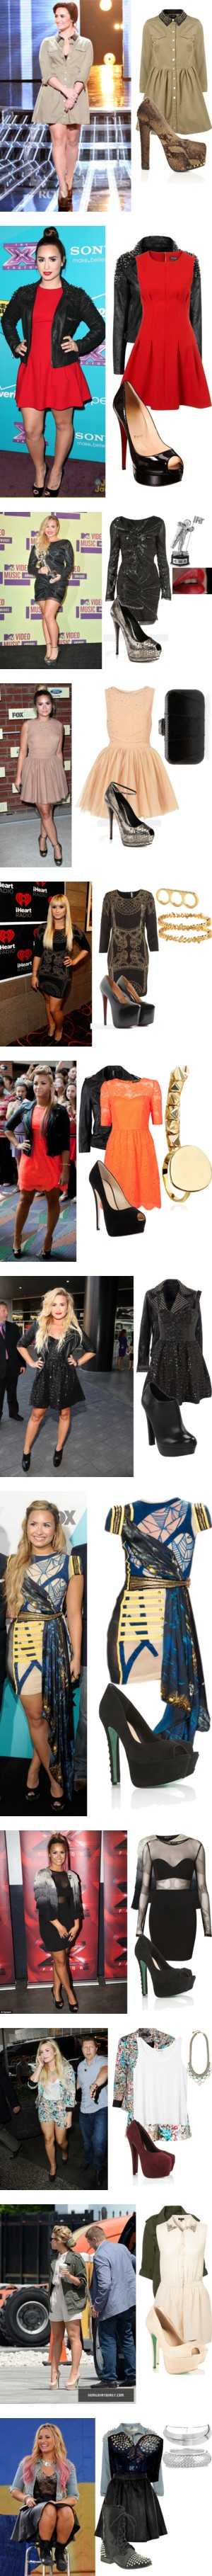 """Demi Lovato♥ Style:)"" by beliebersforeverrss ❤ liked on Polyvore"